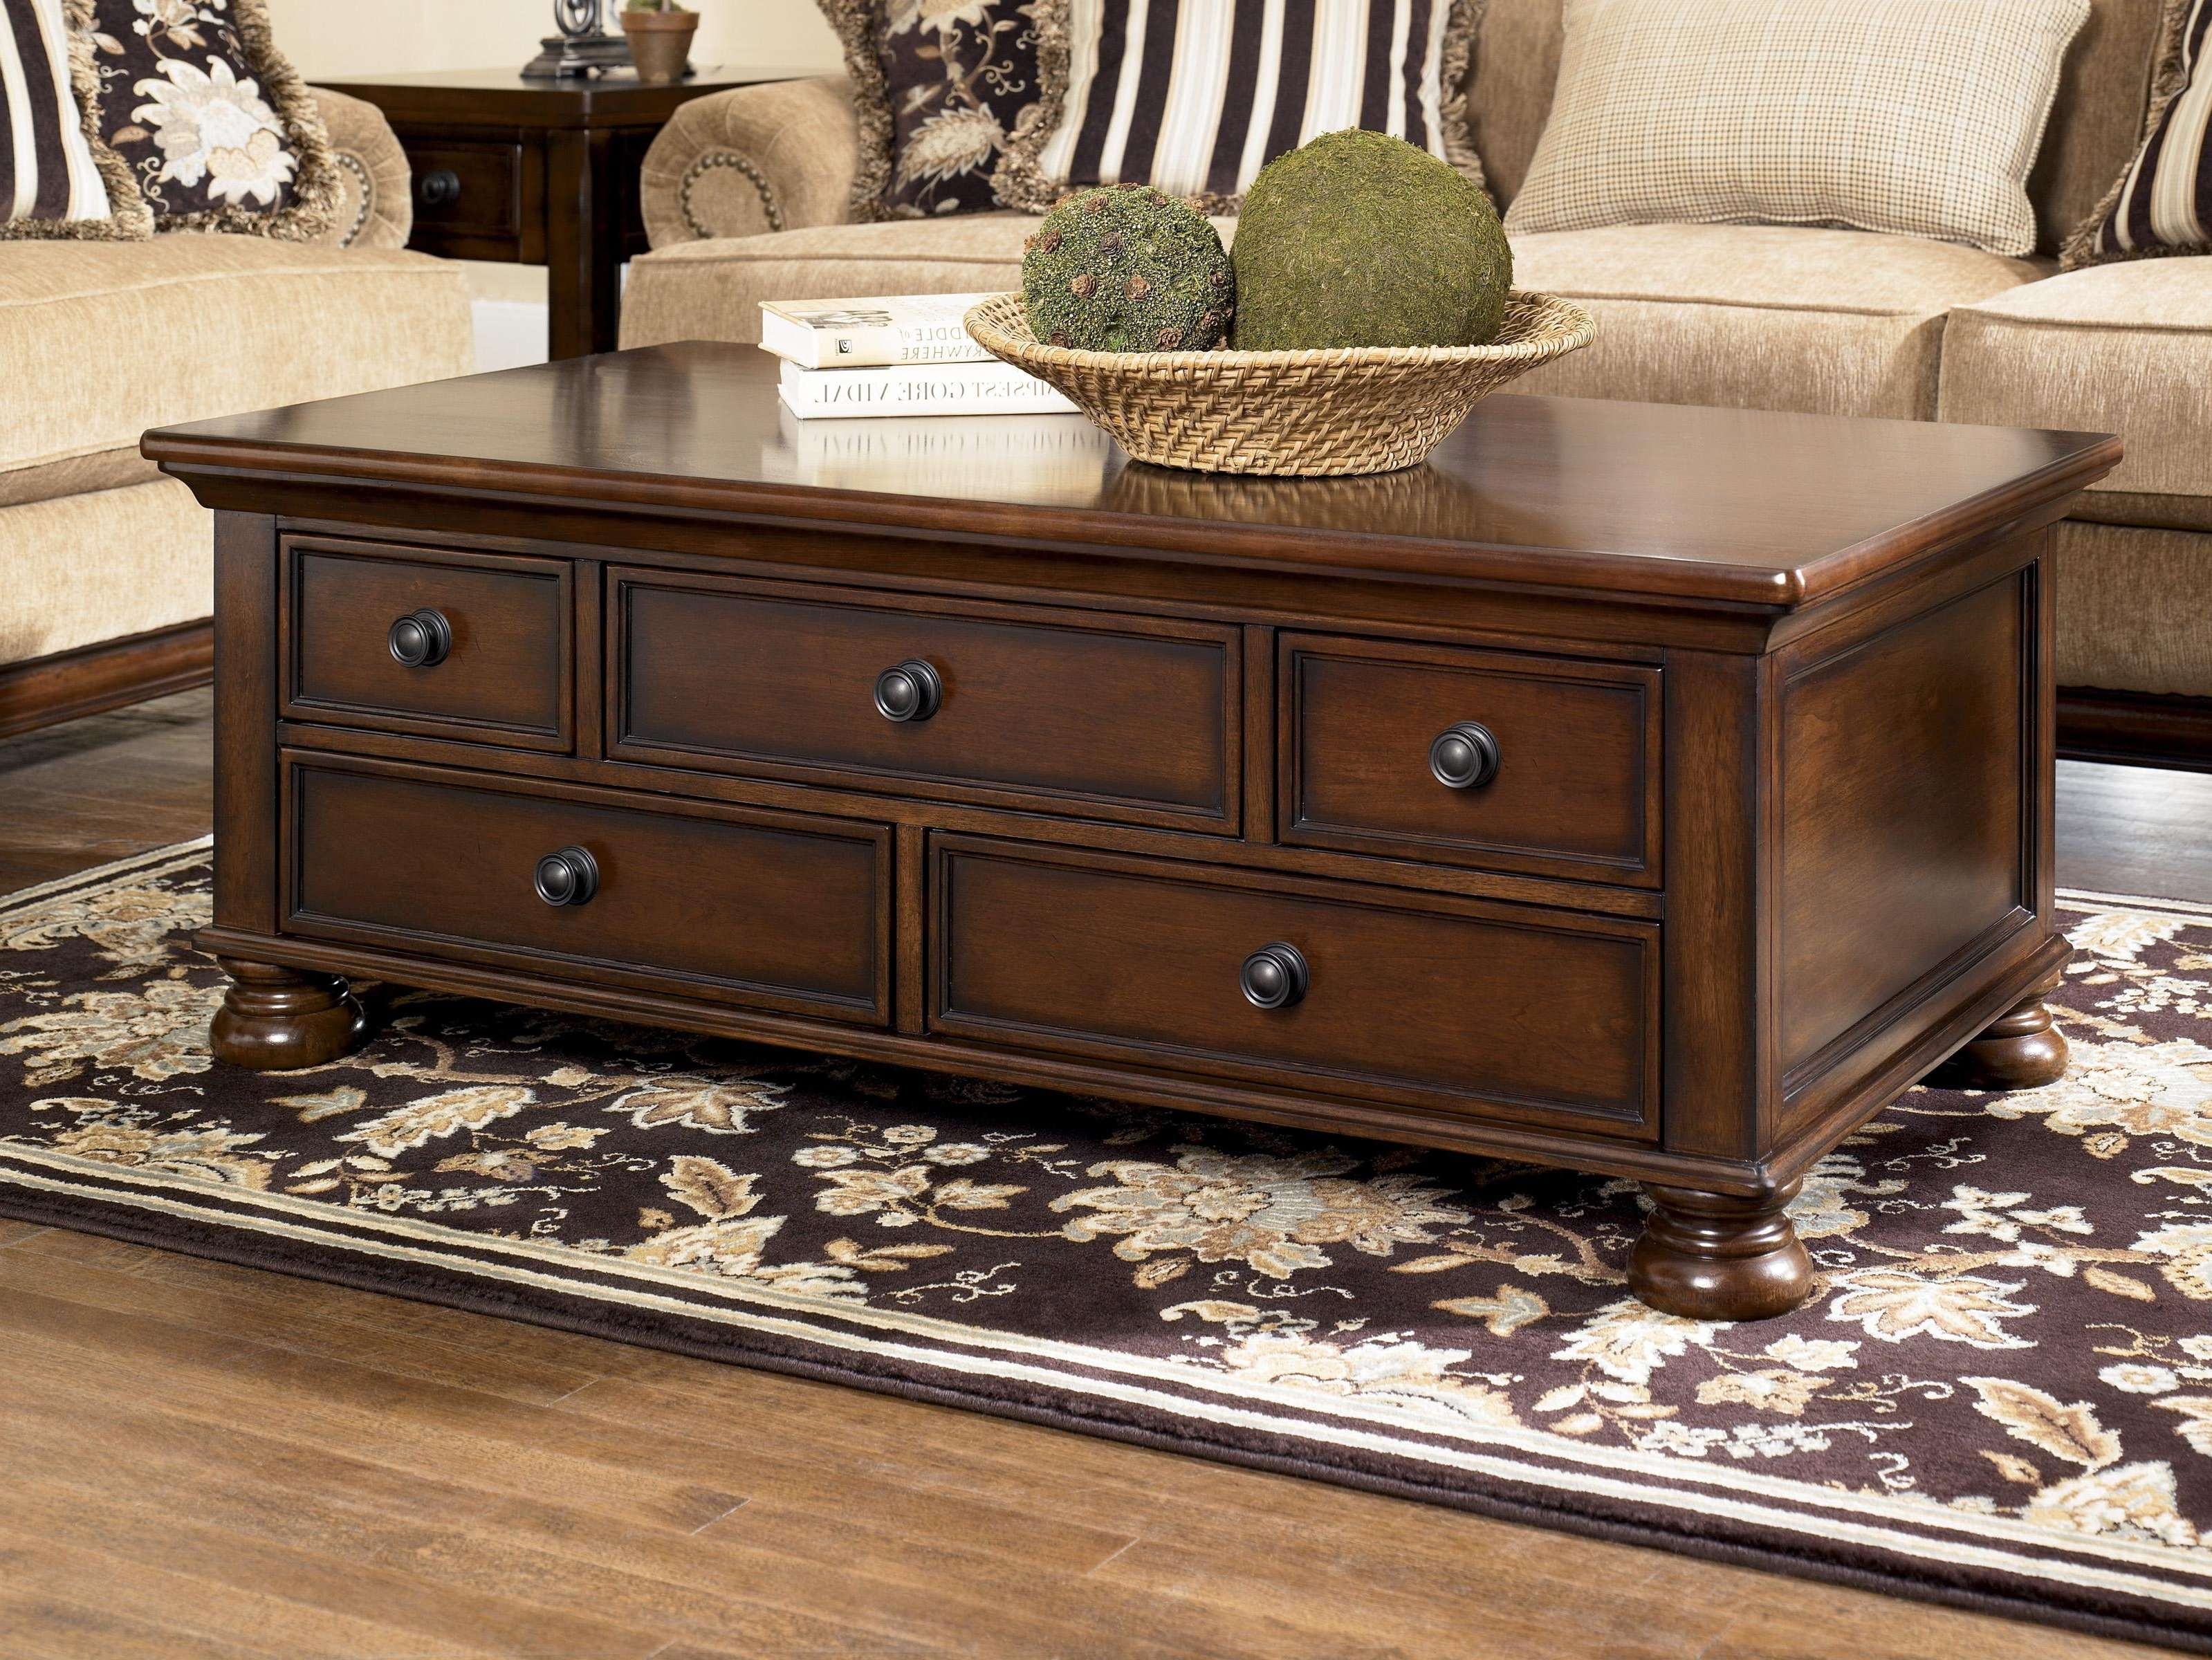 10 Best Collection of Dark Wood Coffee Table Storages